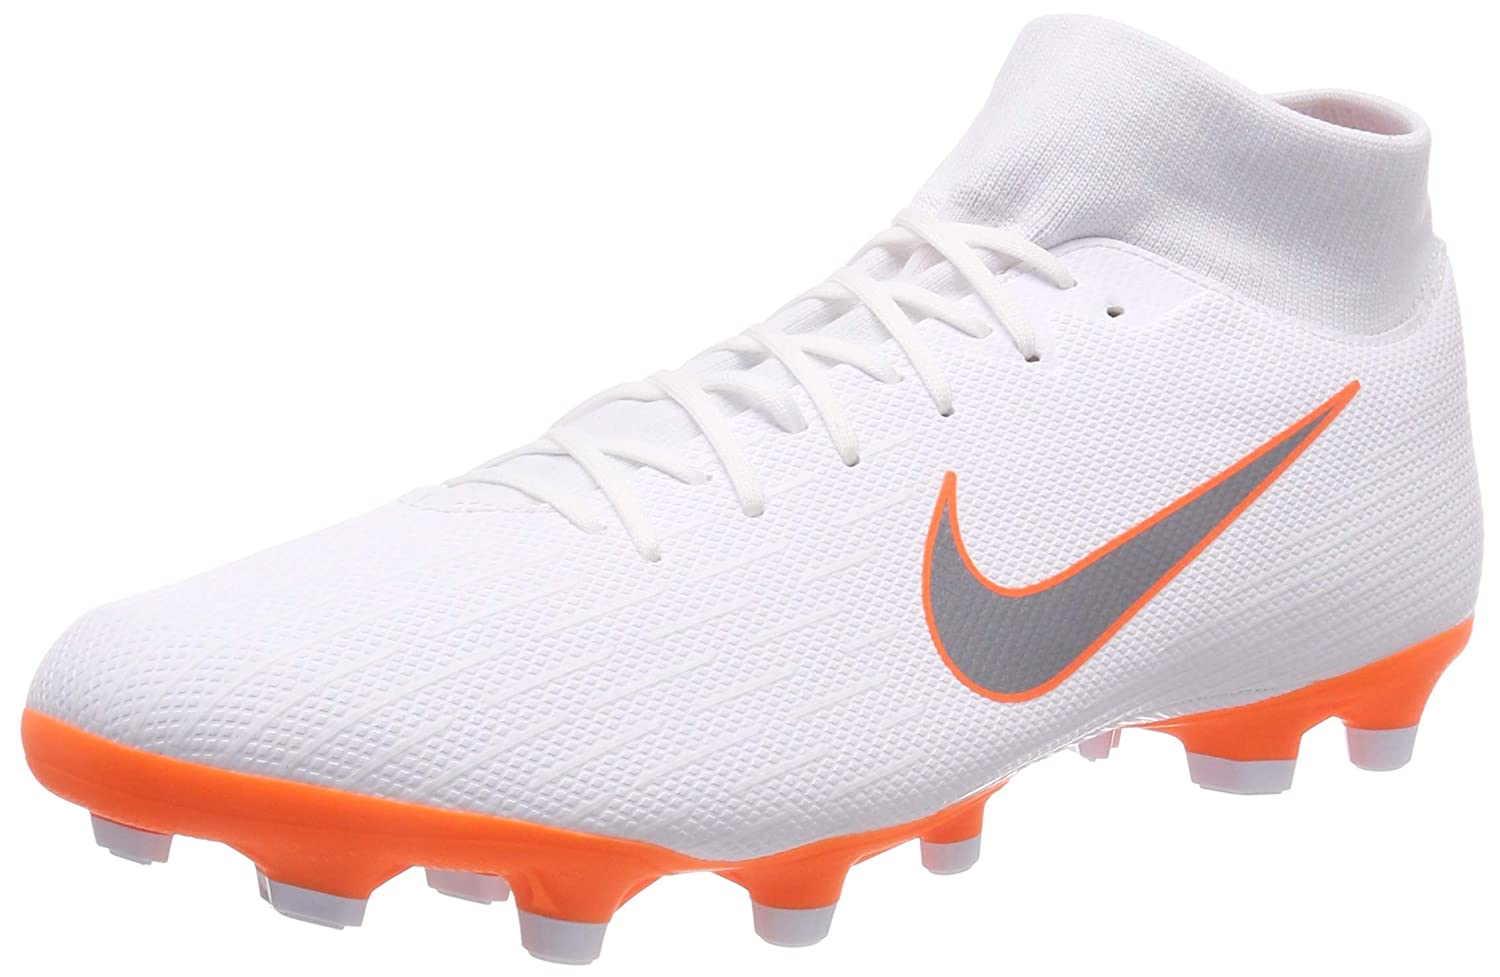 Blanc (Blanc  Orange Blanc  Orange) Nike Mercurial Superfly VI Academy MG, Chaussures de Football Homme 44 EU